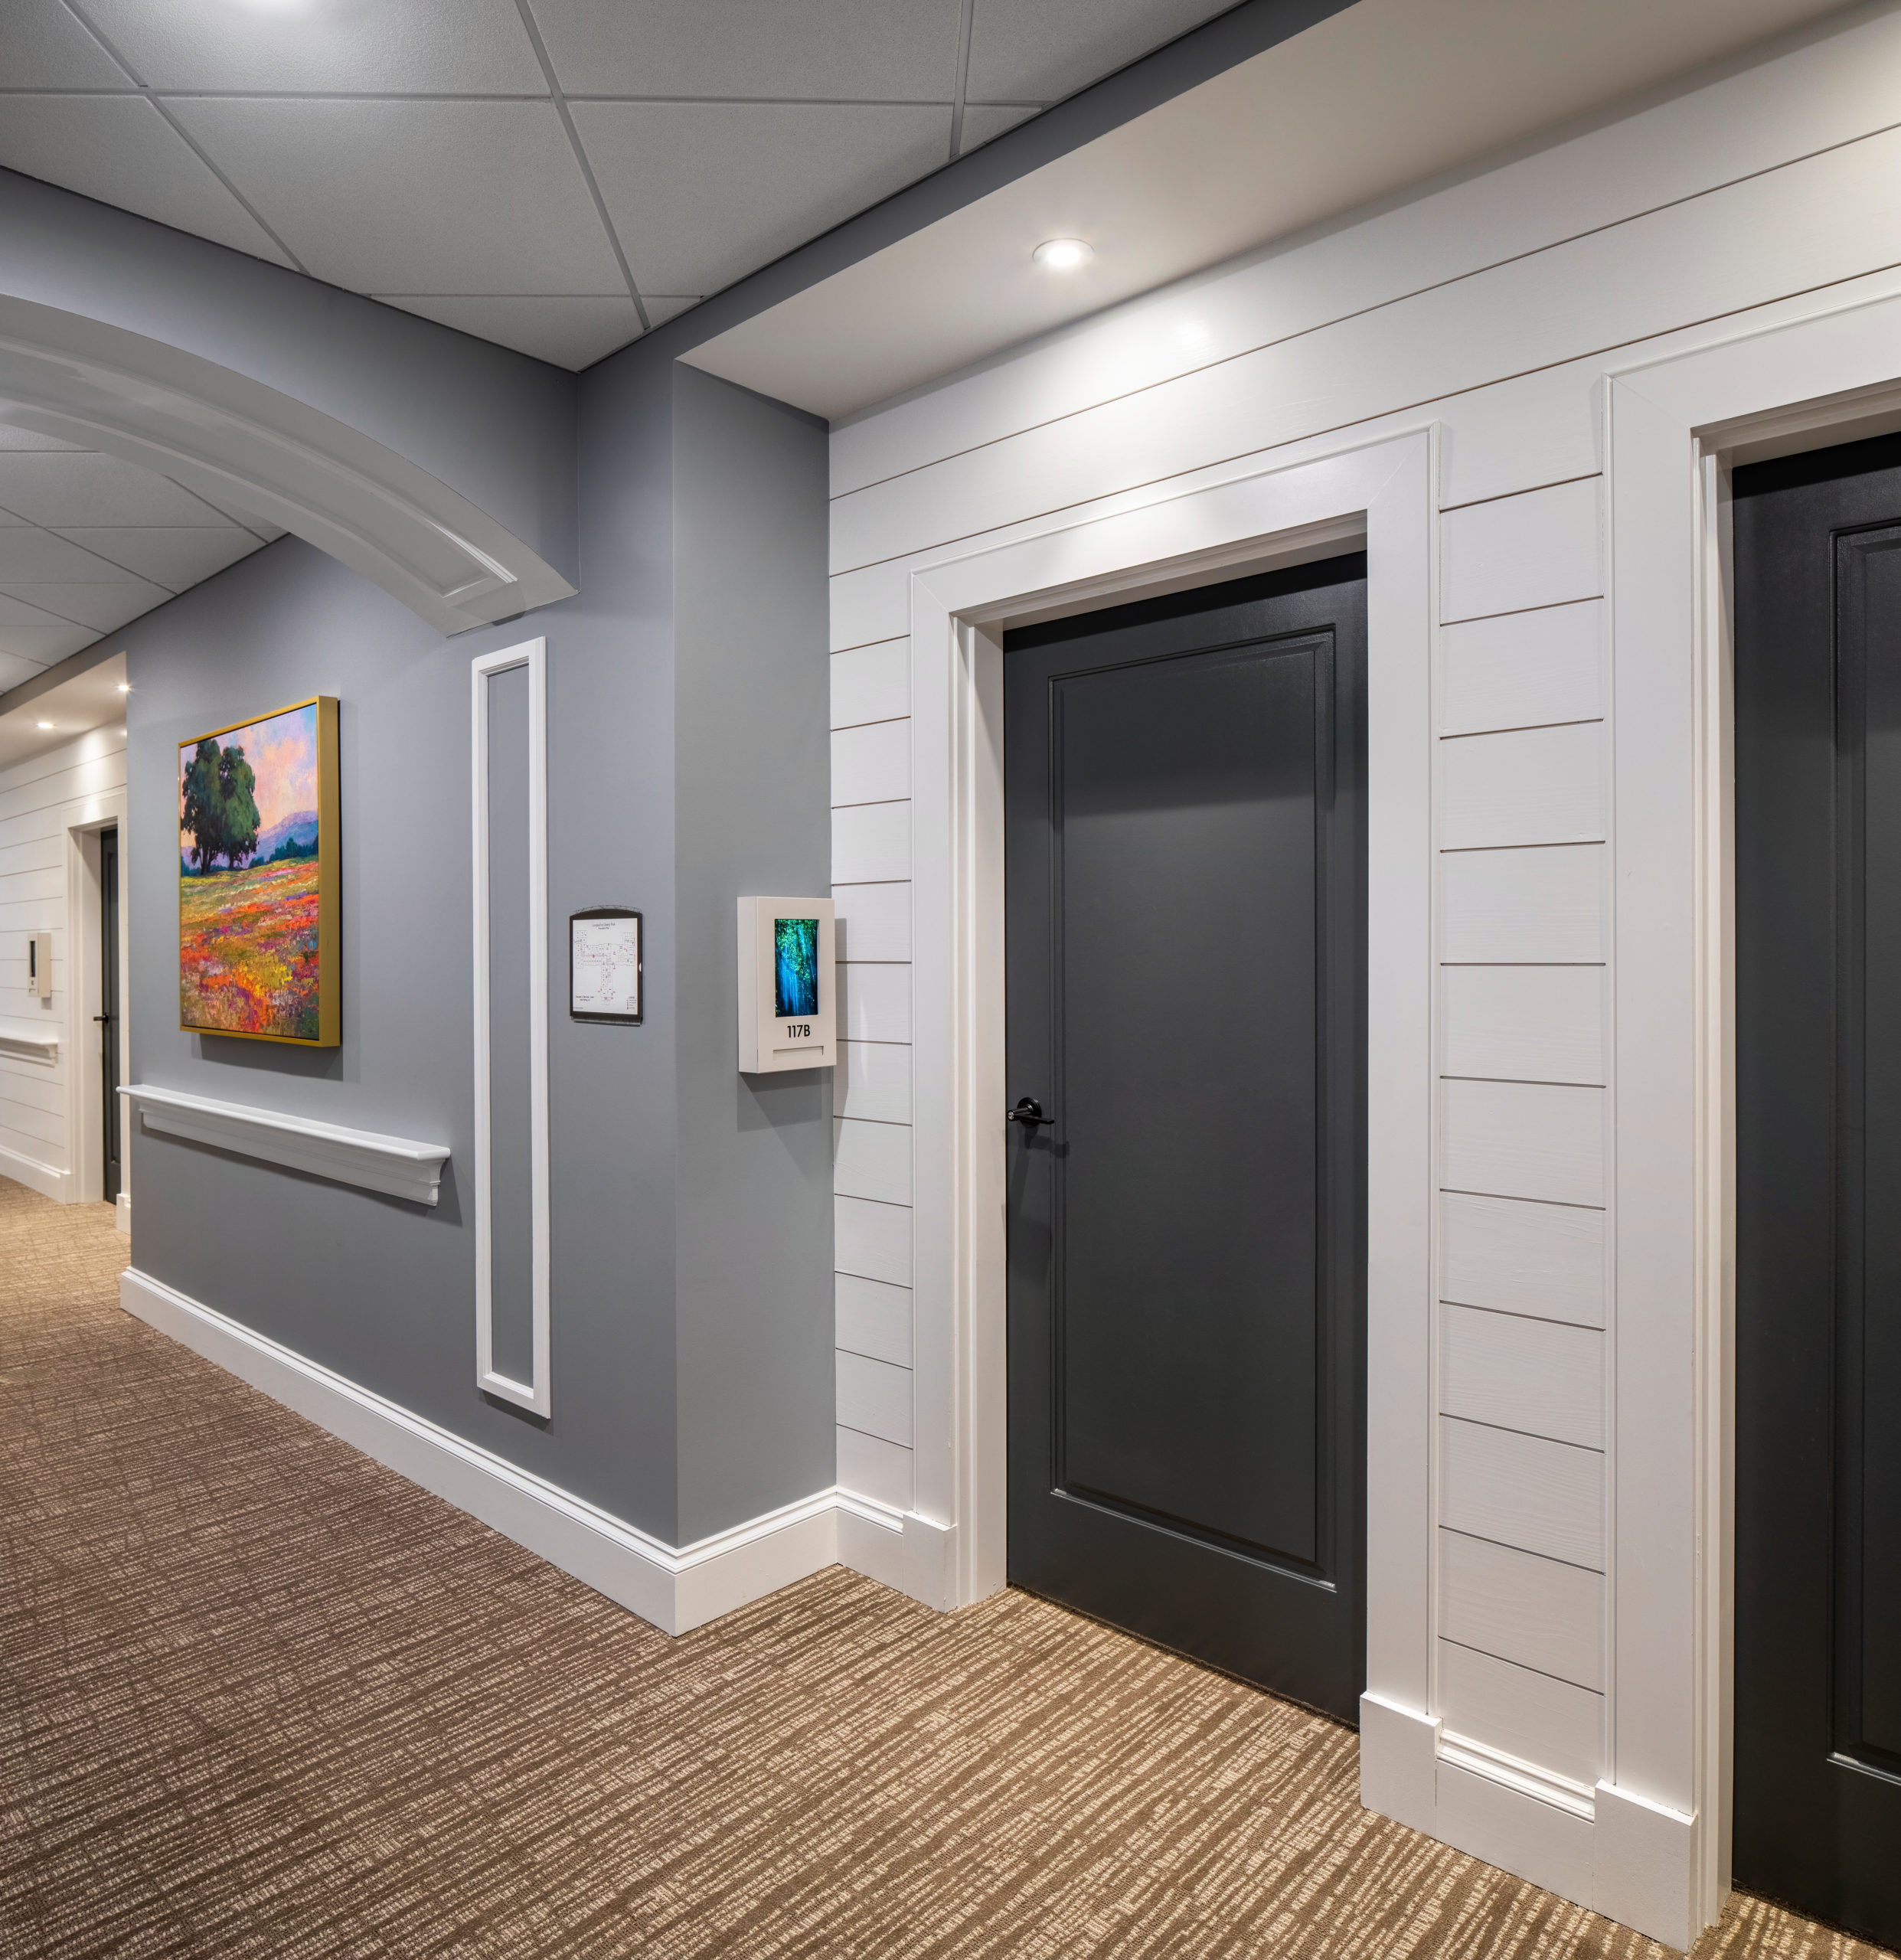 Longleaf hallway with white walls and residents' blue doors at right, gray walls at left